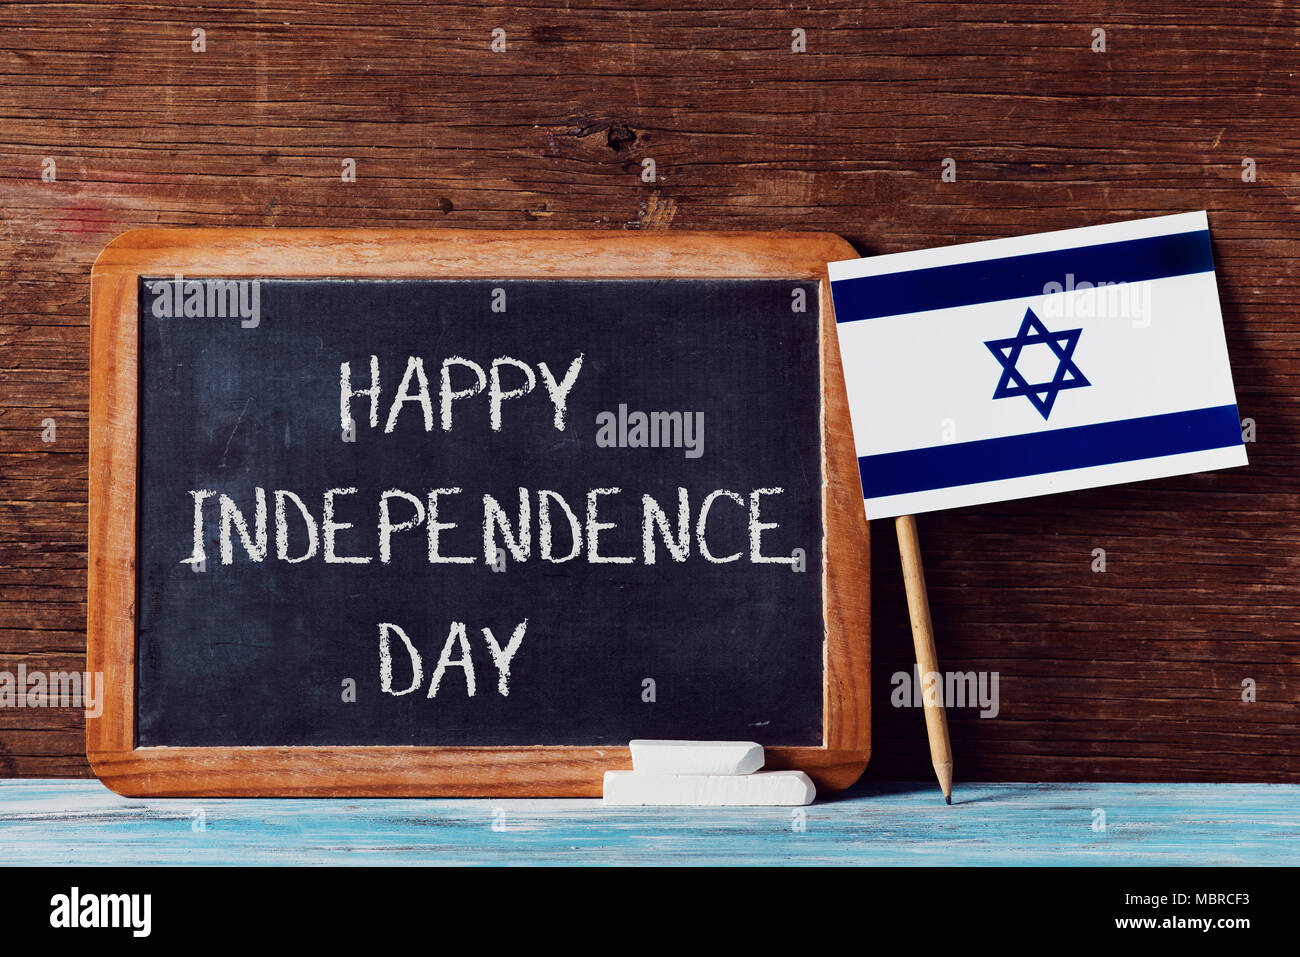 a wooden-framed chalkboard with the text happy independence day written in it, some pieces of chalk and an israeli flag on a rustic wooden surface Stock Photo